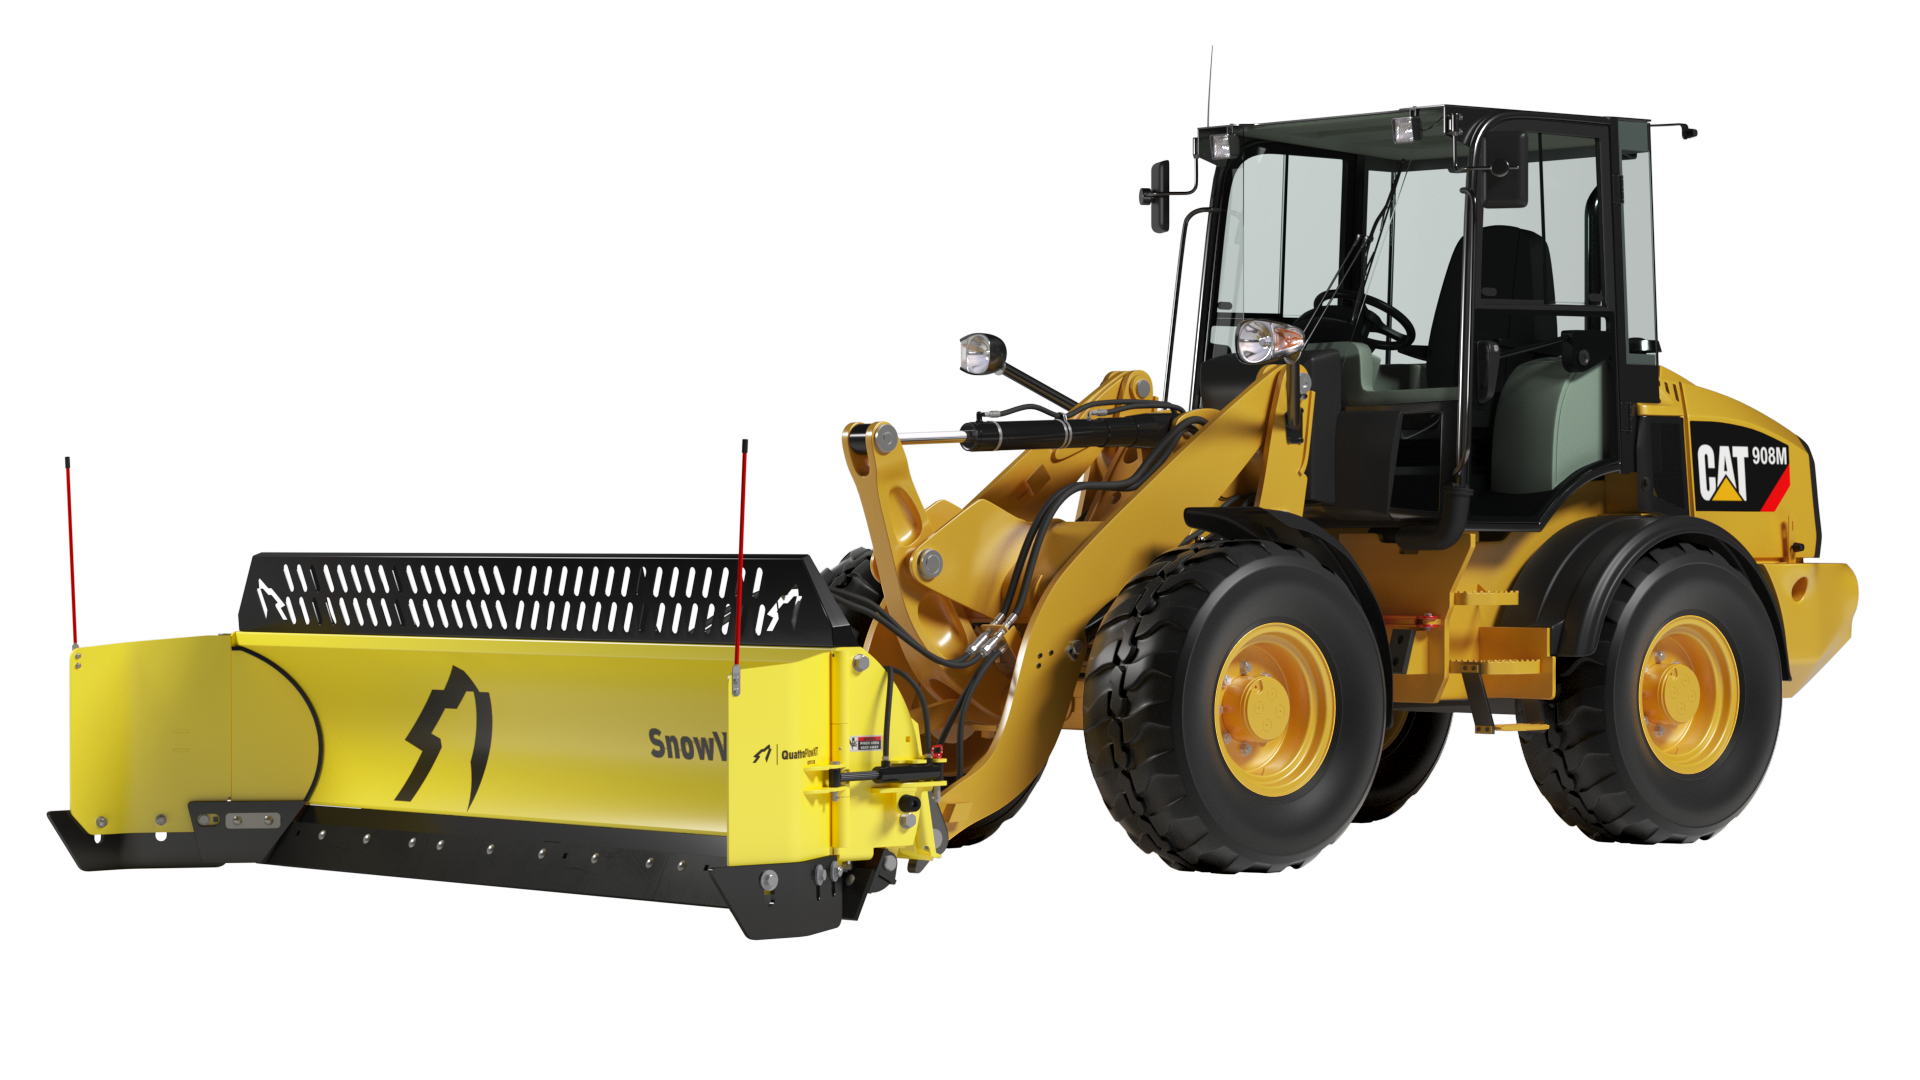 QuattroPlowXT for Compact Wheel Loaders